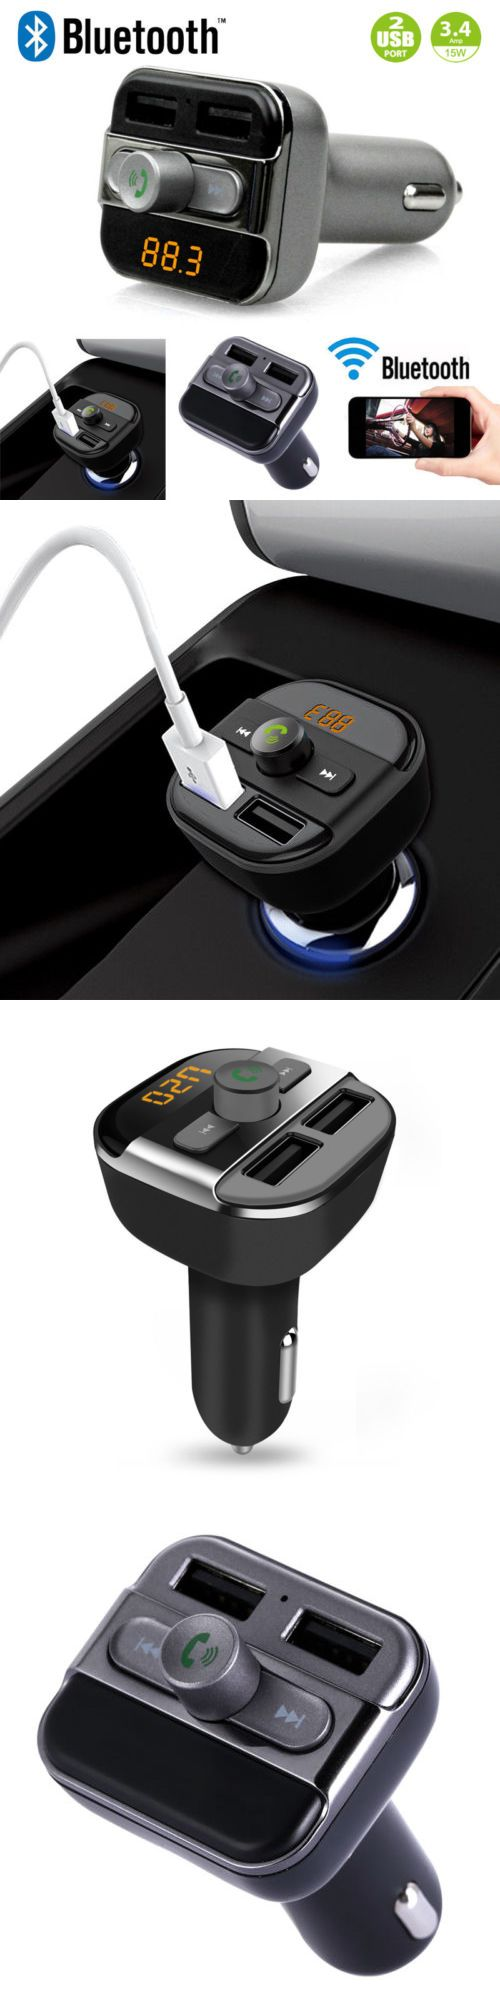 FM Transmitters: Bluetooth Fm Transmitter Car Kit Wireless Mp3 Player Dual Usb Charger -> BUY IT NOW ONLY: $112.99 on eBay!